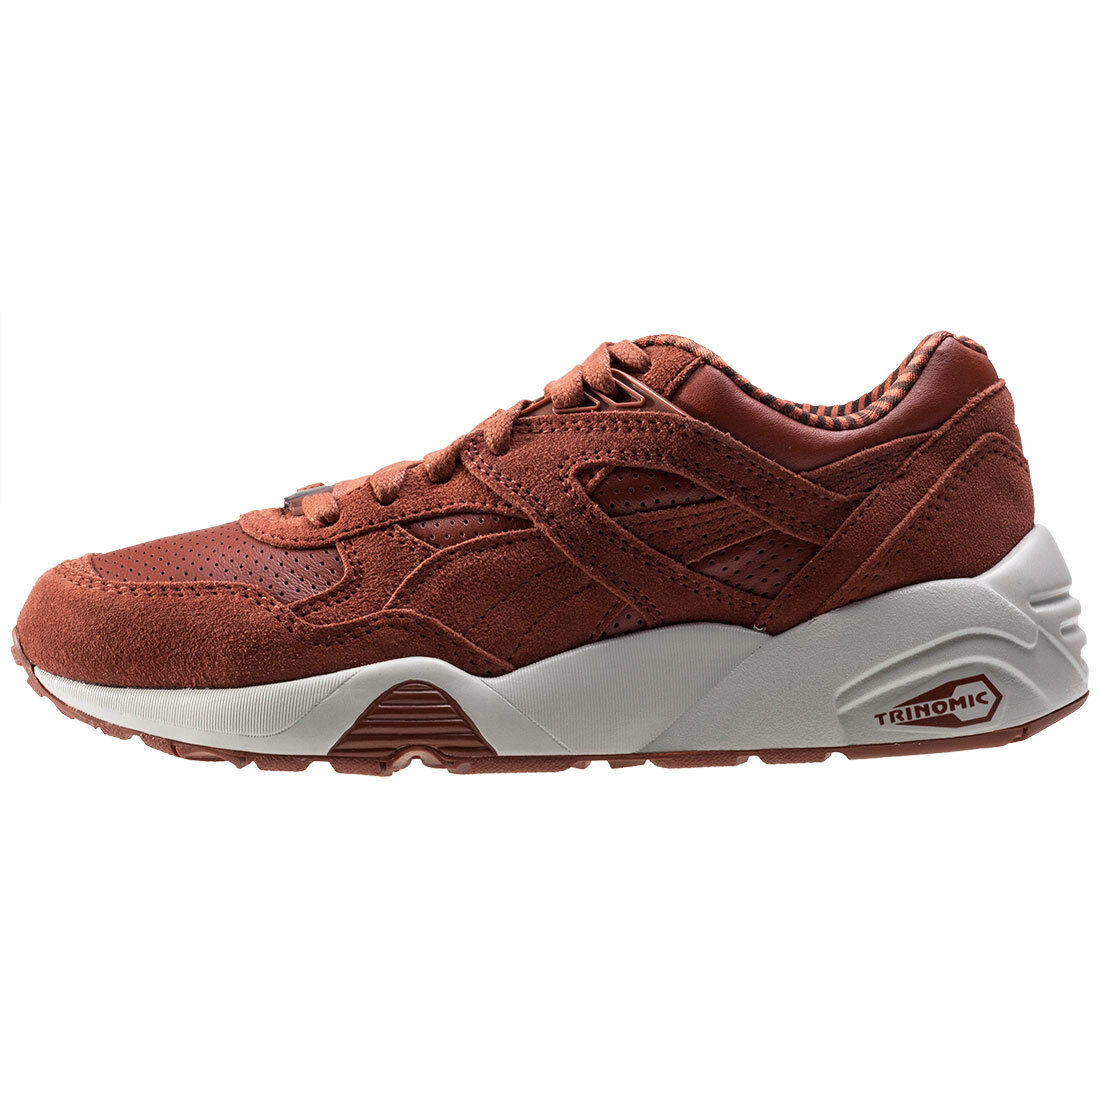 Puma R698 citi marron en Cuir et Daim Baskets Neuves Chaussures Boxed